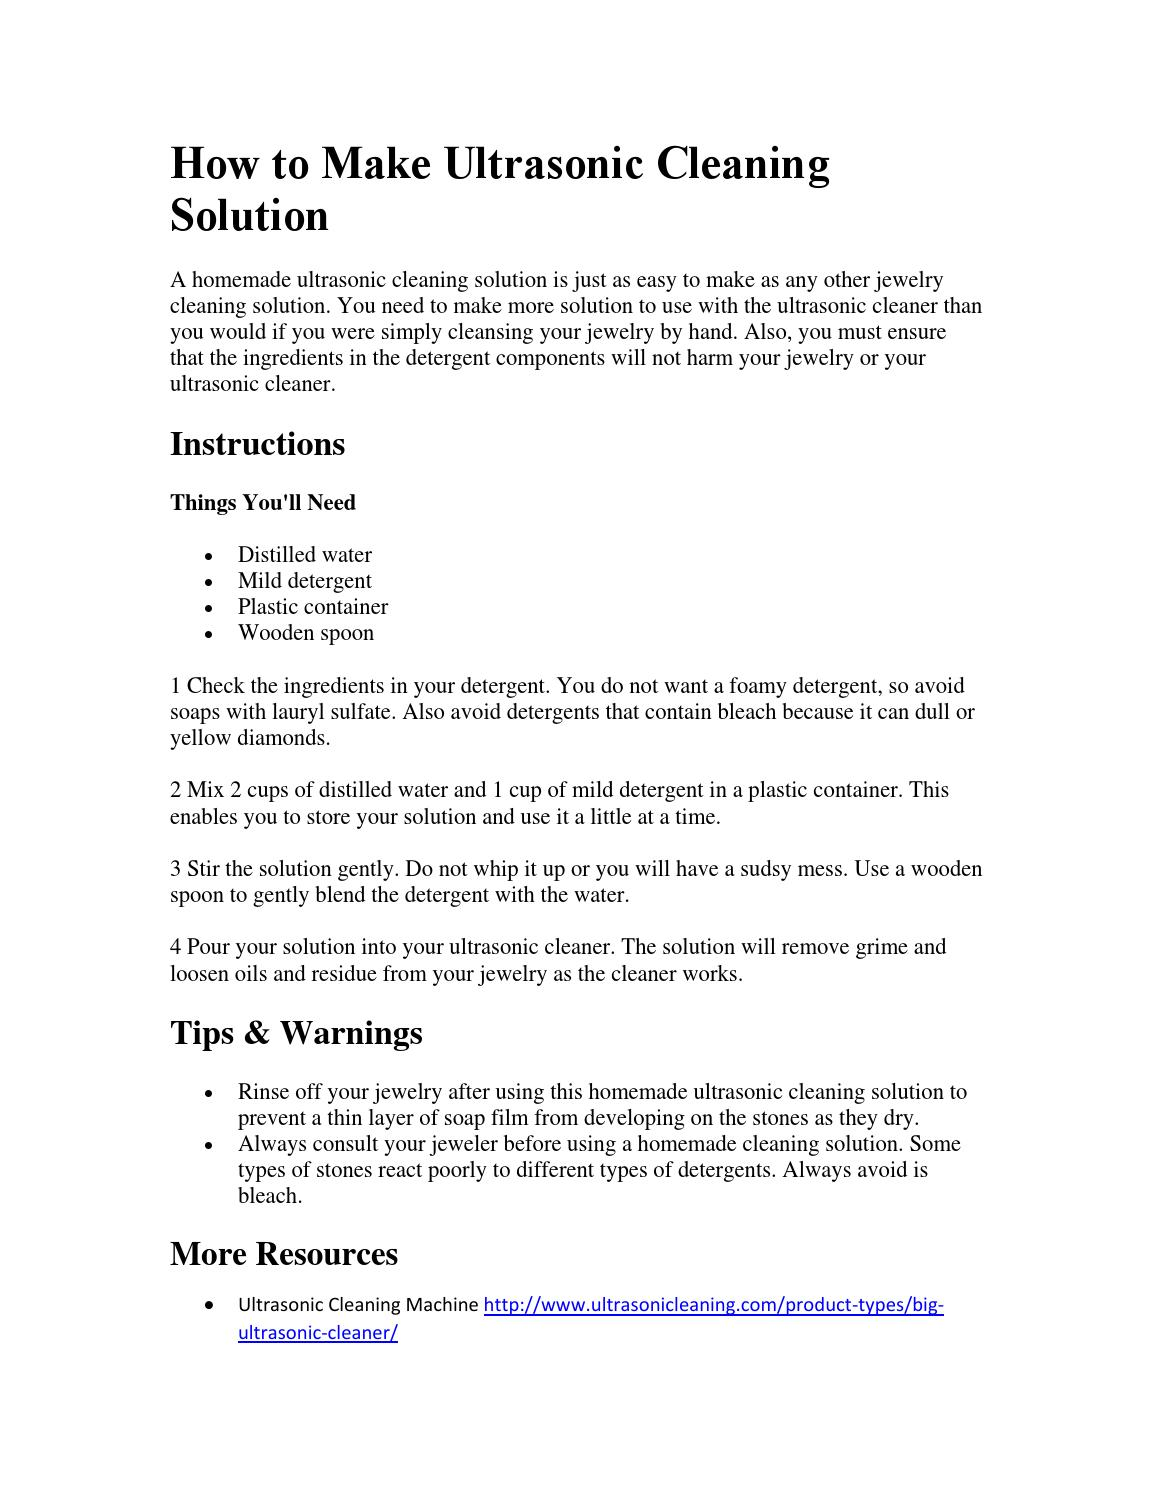 How to make ultrasonic cleaning solution by Jessie Wang - issuu